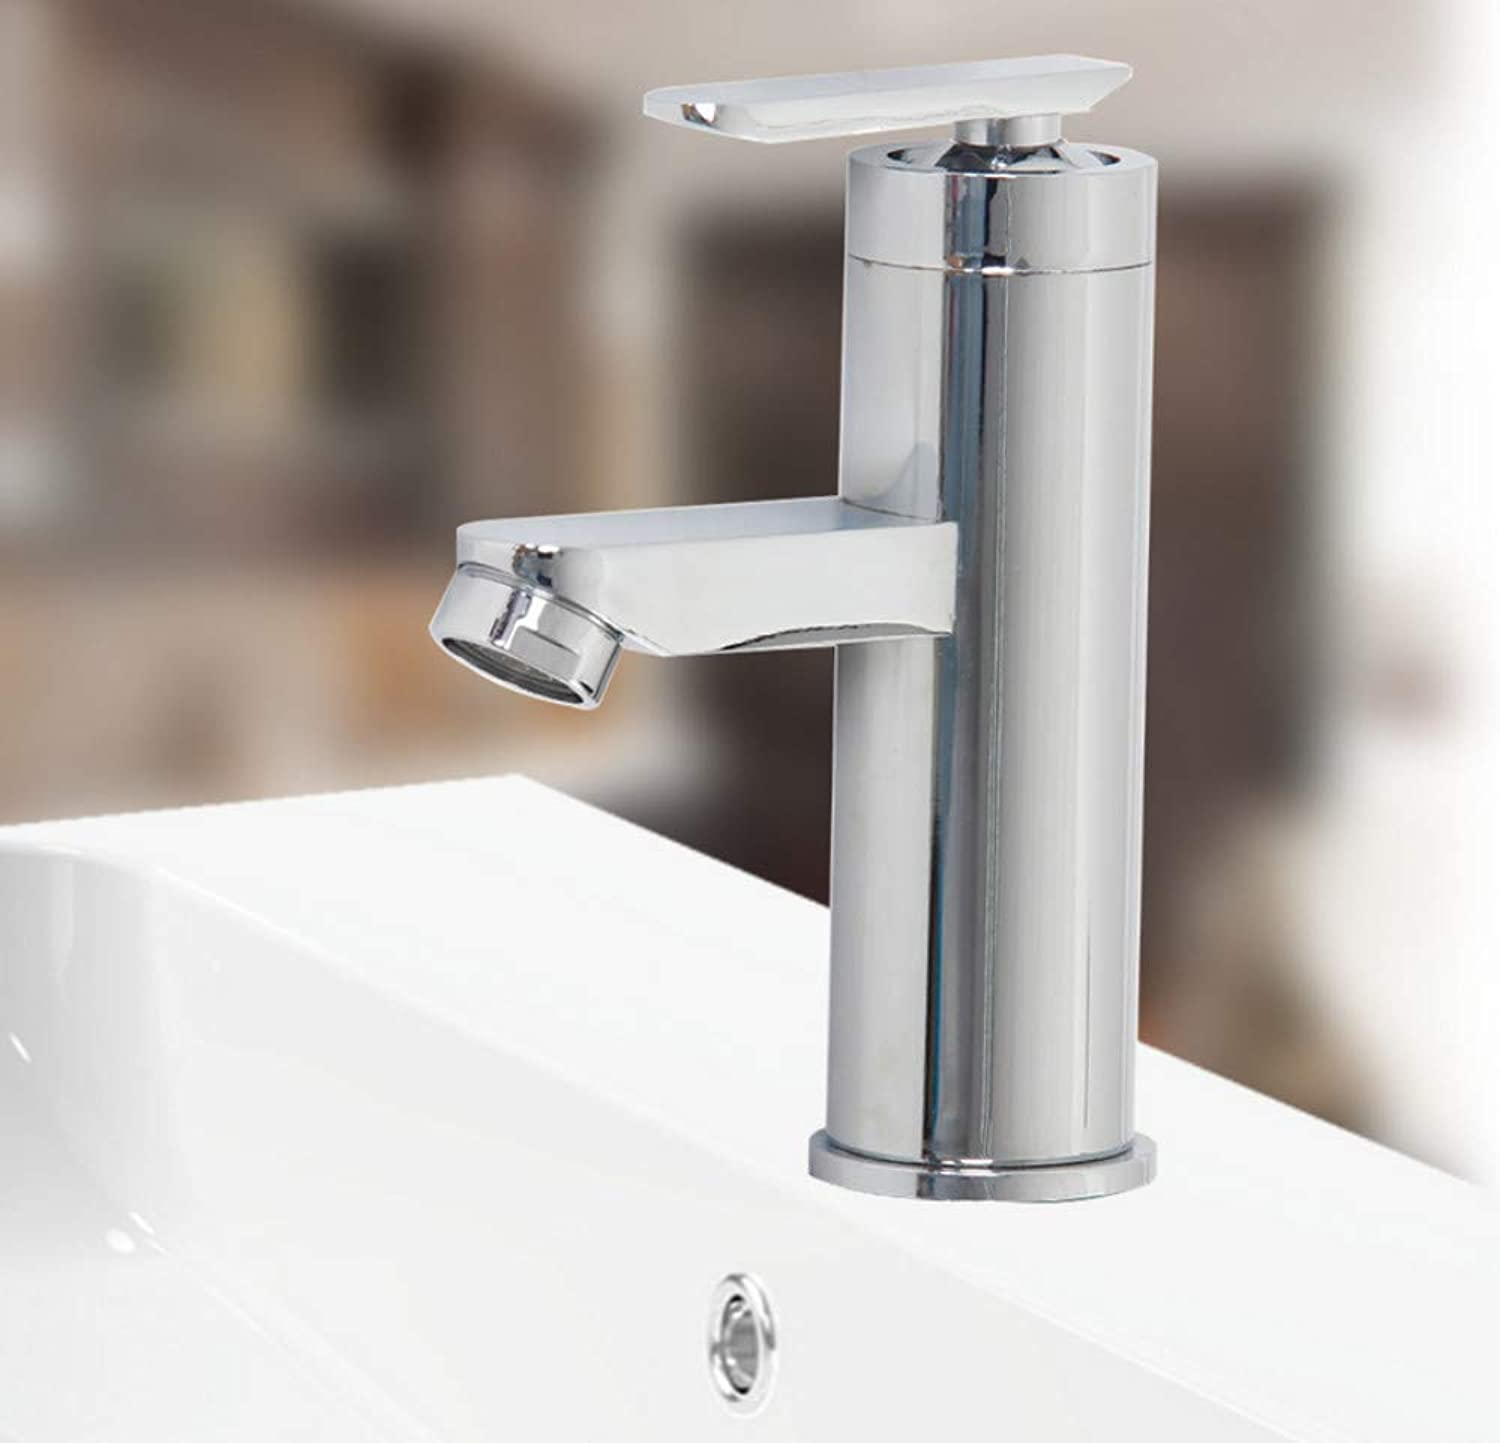 Basin Faucet Bathroom Faucet Sink Water Faucet Deck Mounted Hot and Cold Water Mix Faucets Home Kitchen Single Handle Wash Tap